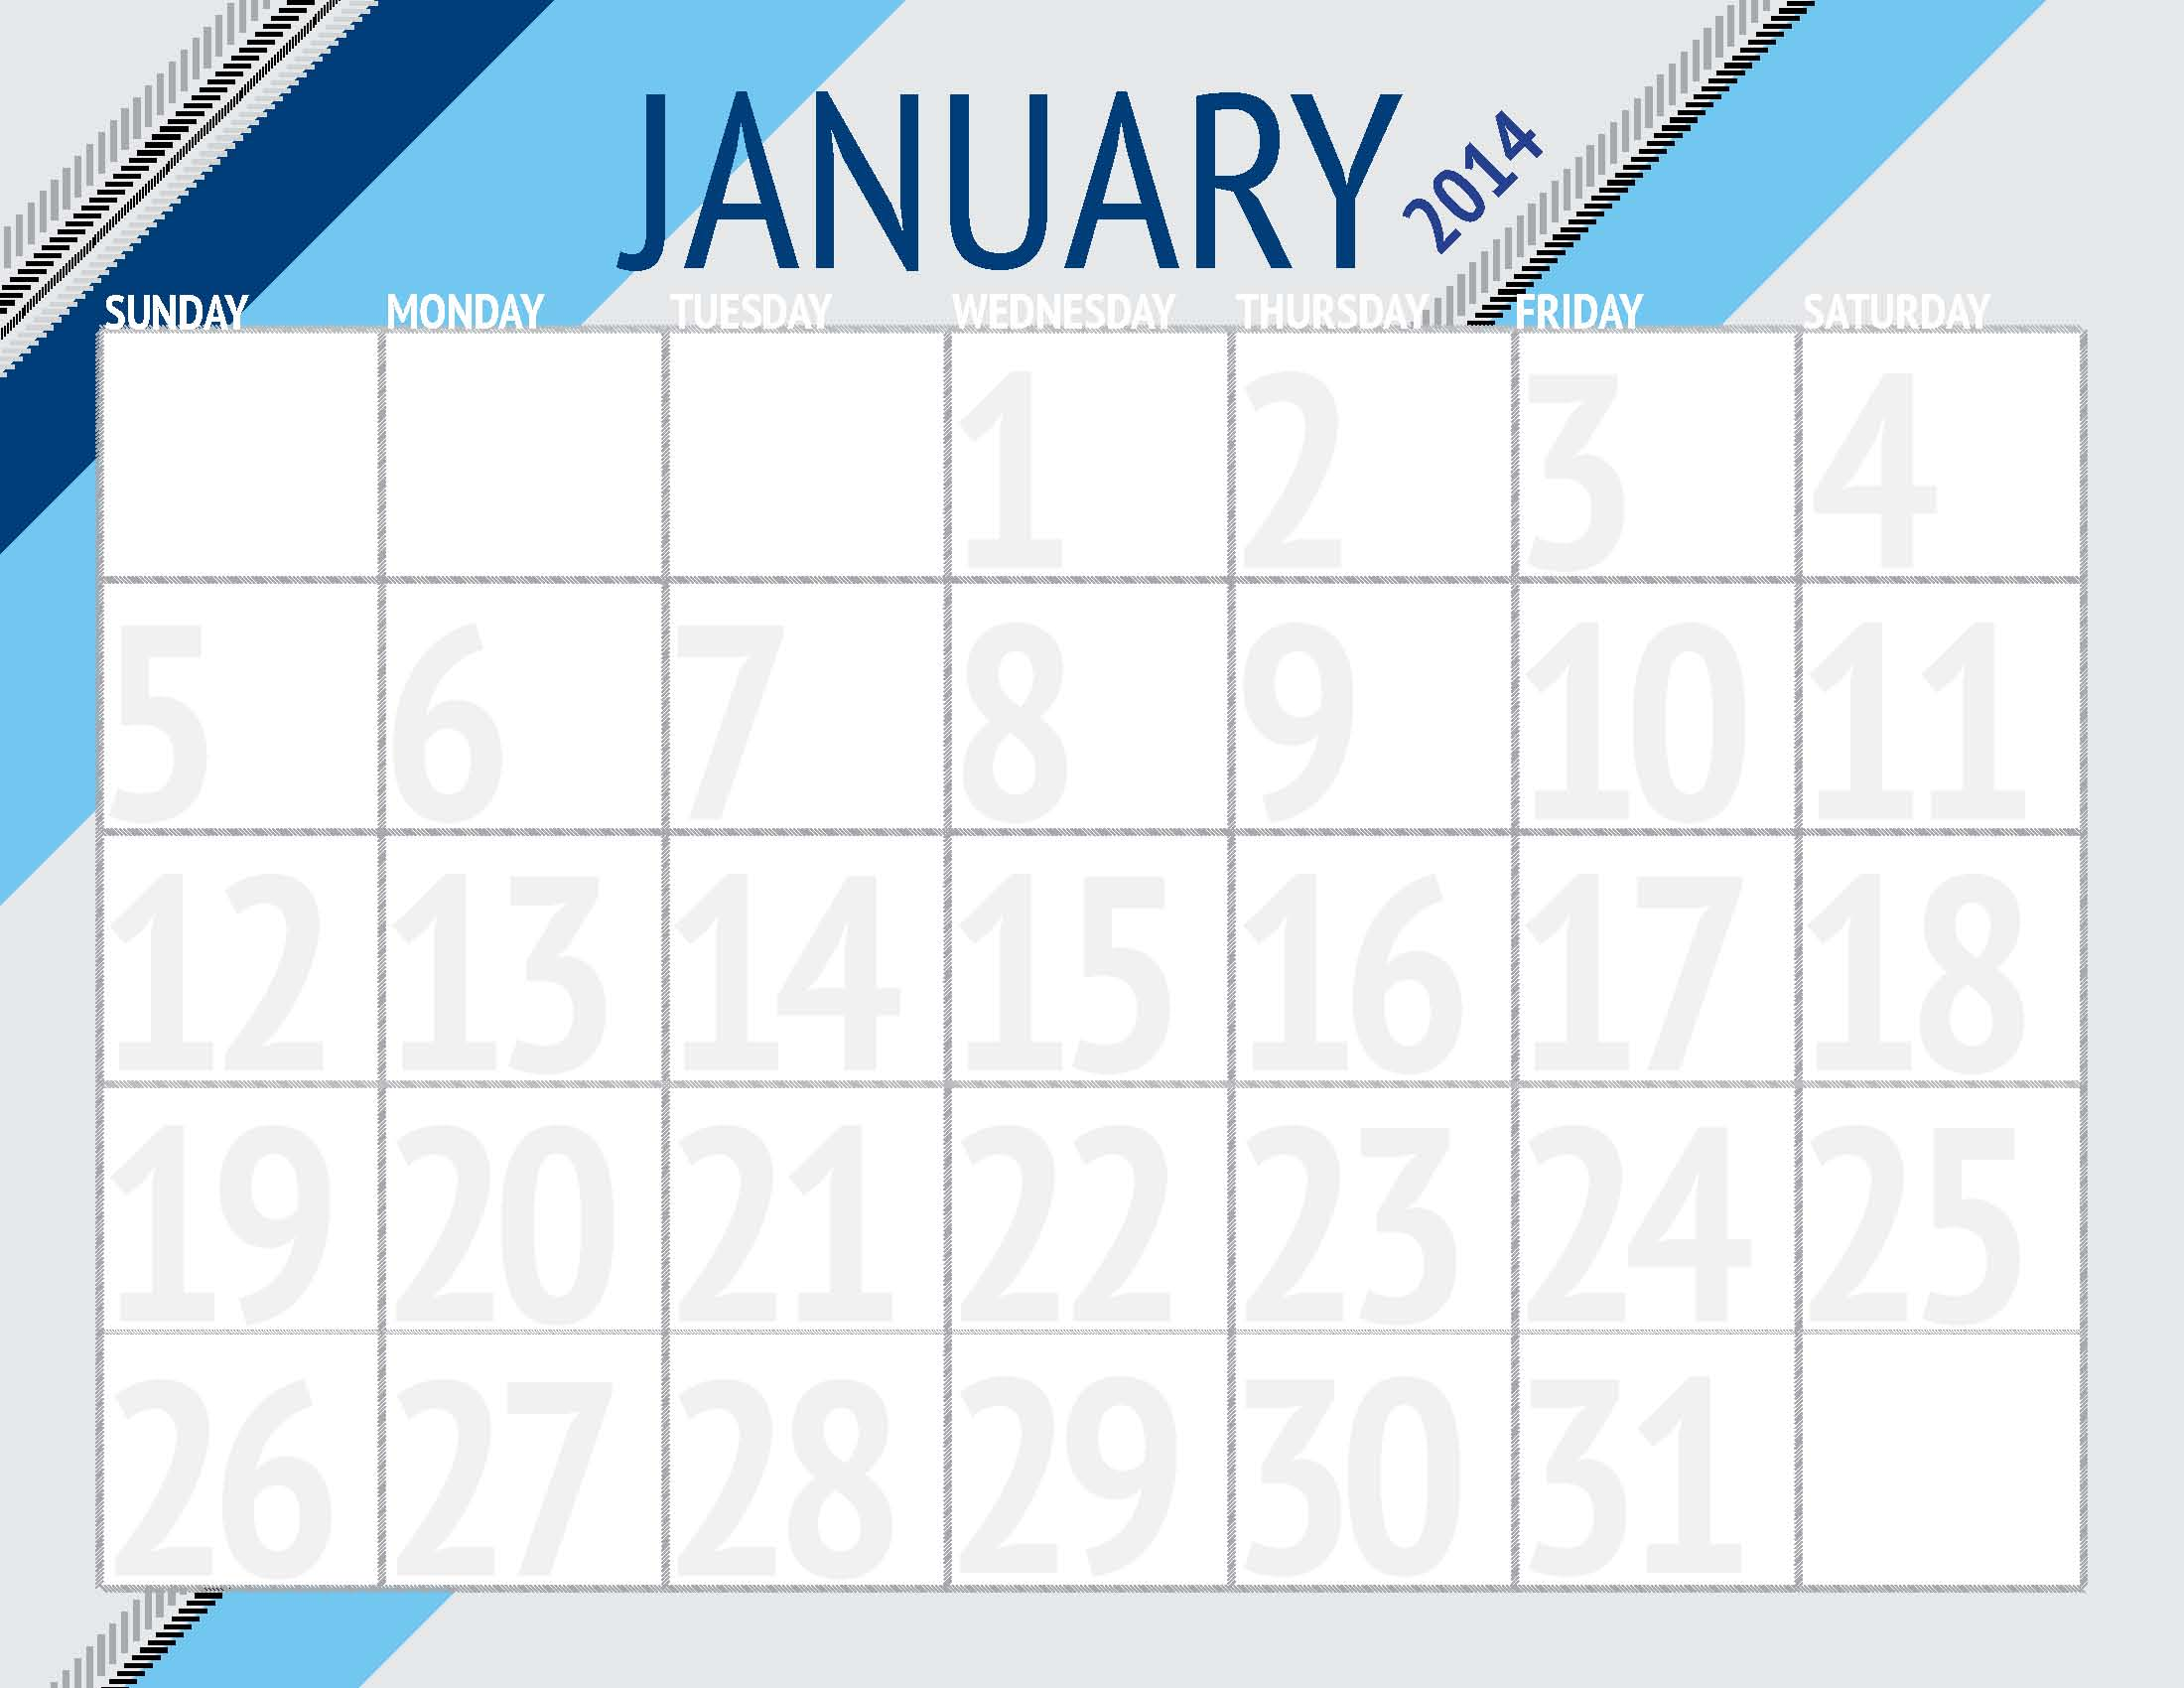 fillable calendar template 2014 - 8 best images of monthly planner printable 2014 calendar